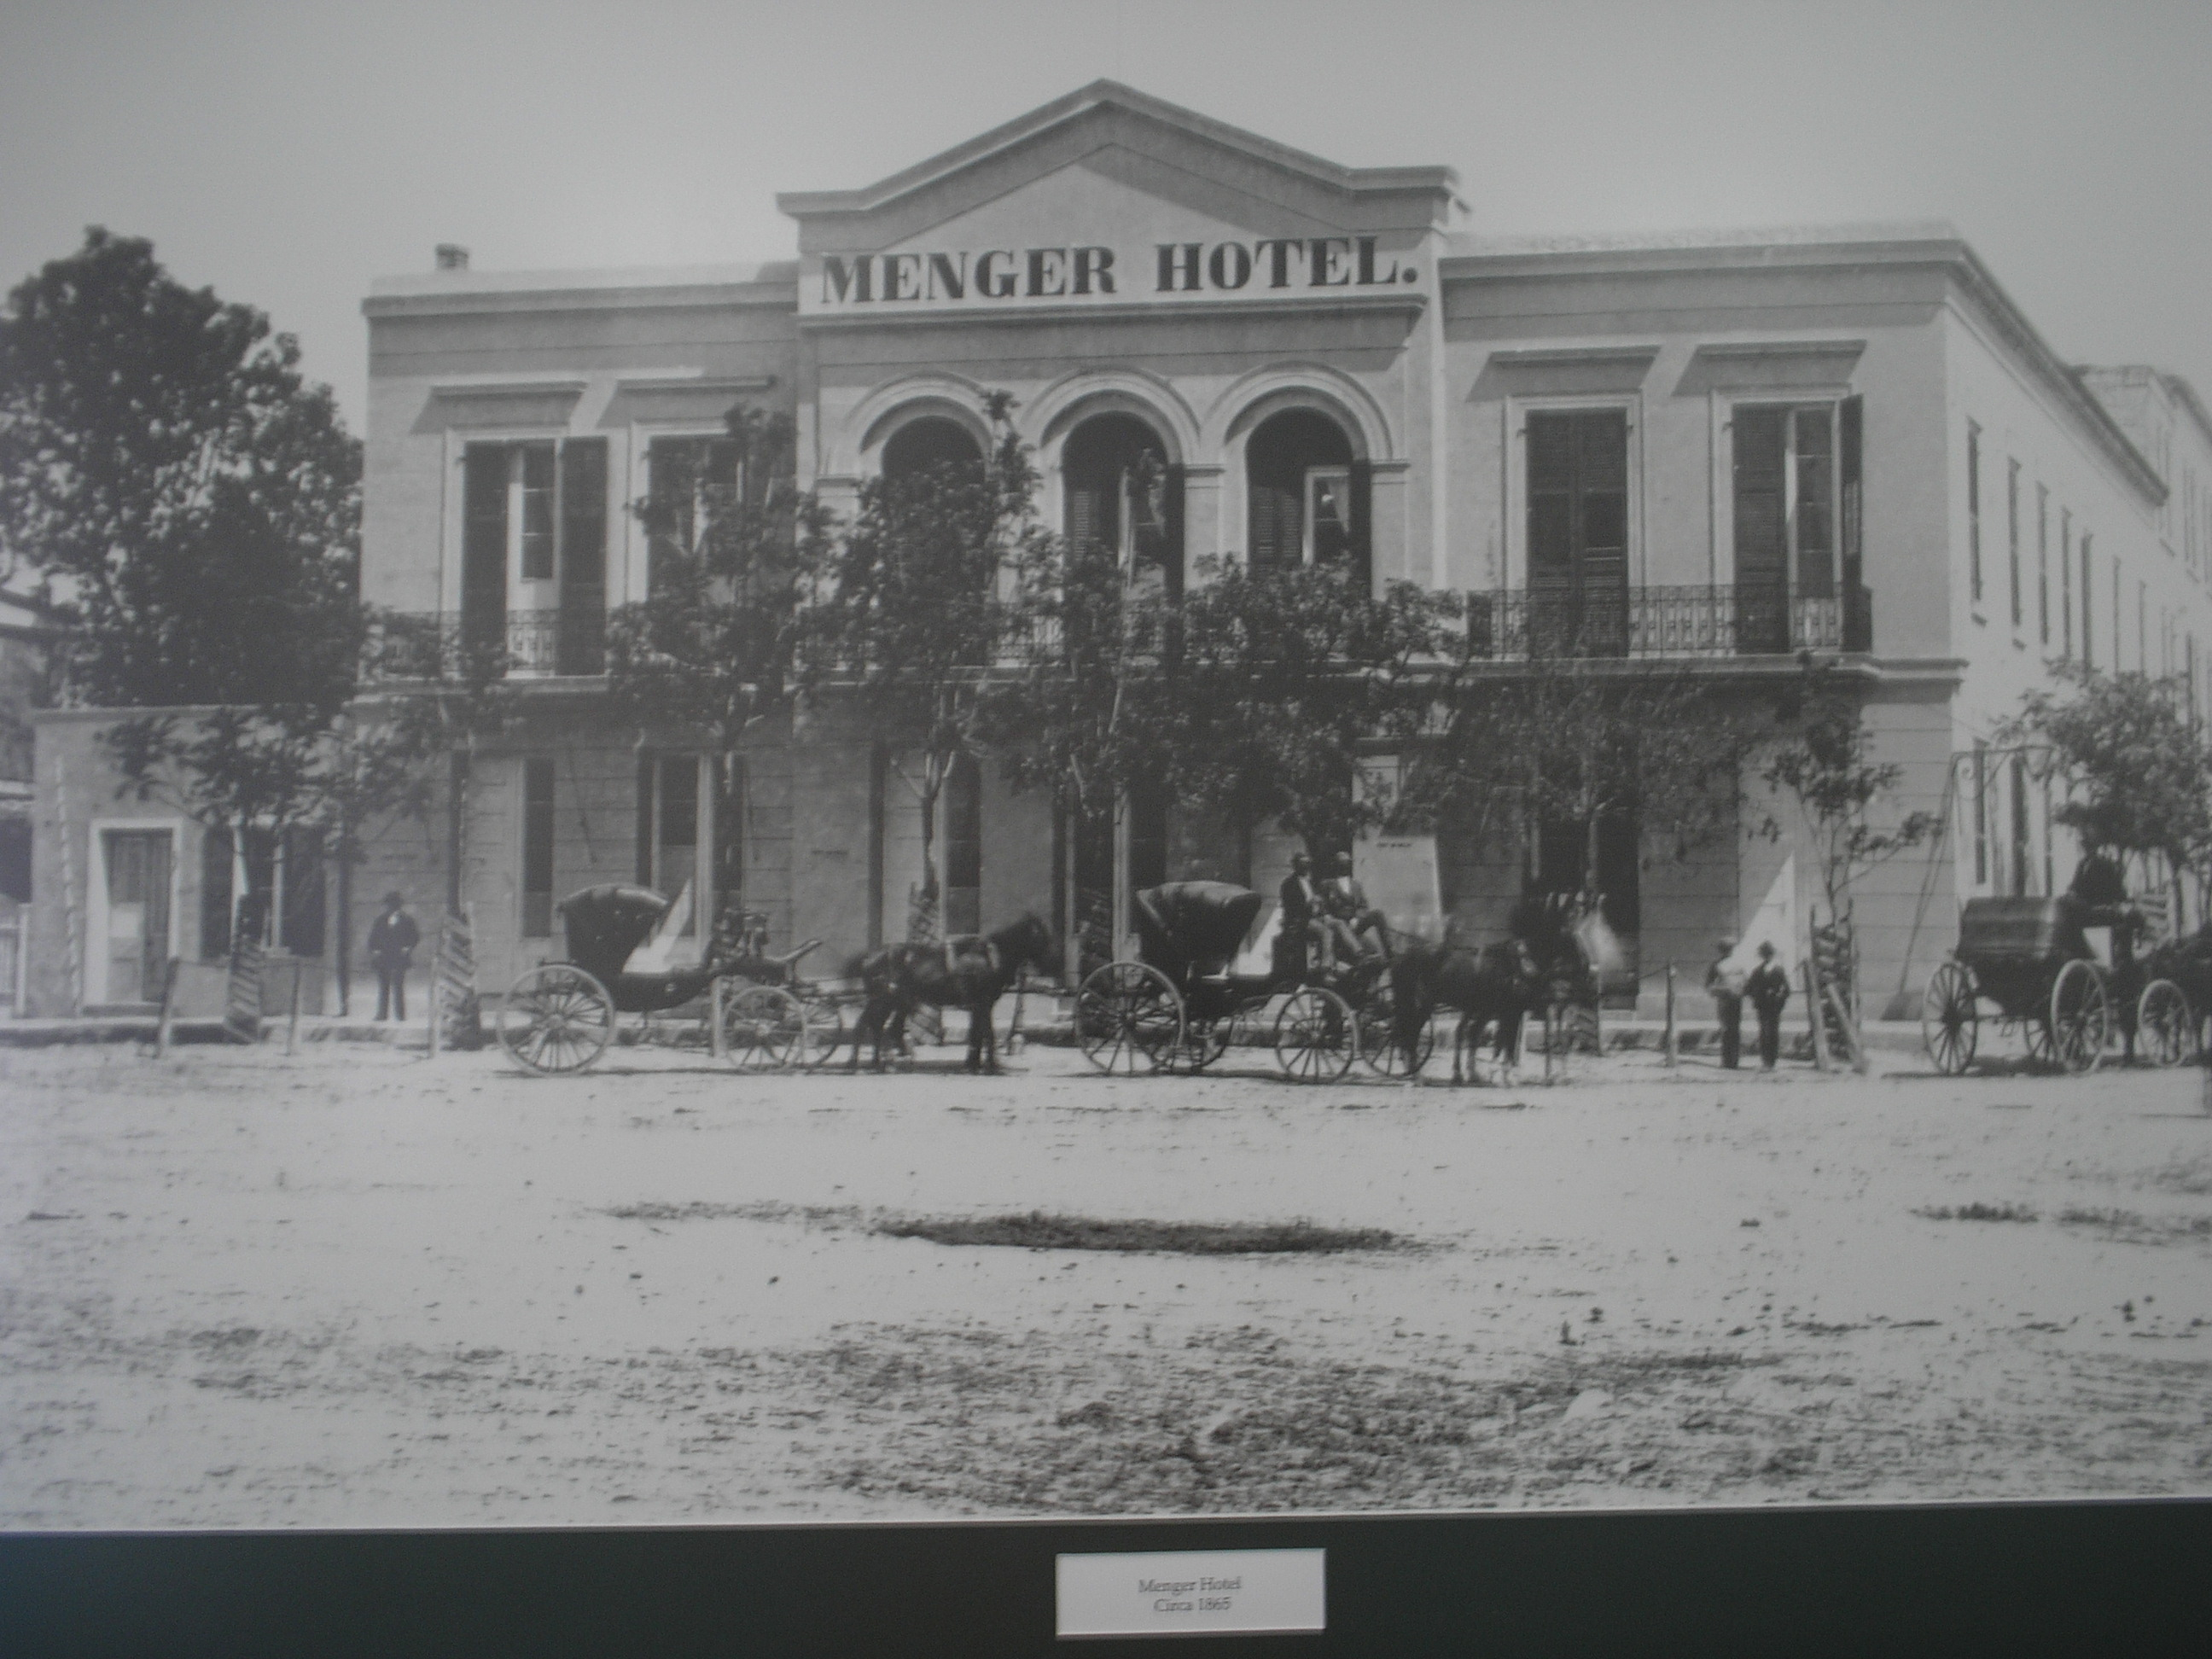 Menger Hotel, from the exterior